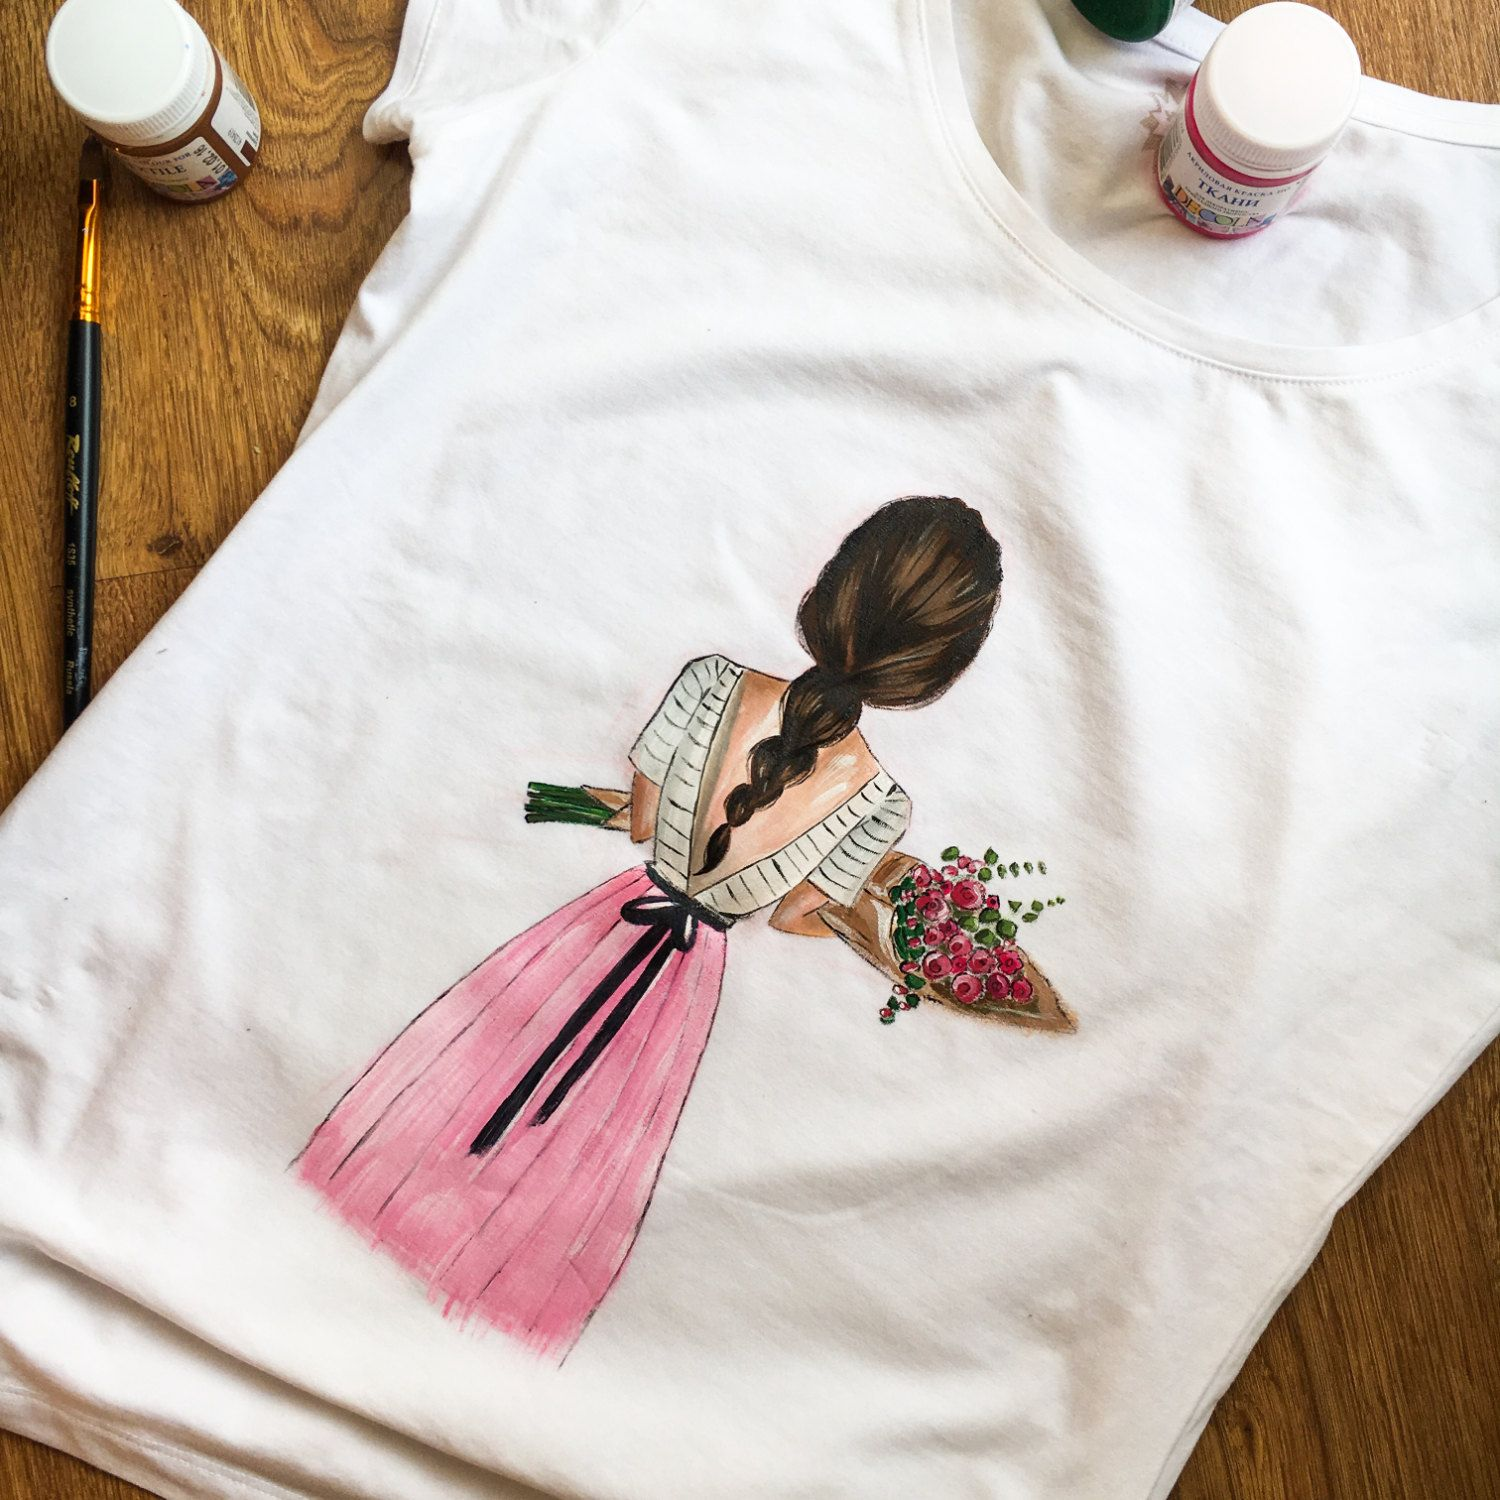 Design t shirt hand made - Hand Painted T Shirt Girl Fashion Illustration T Shirt Cotton T